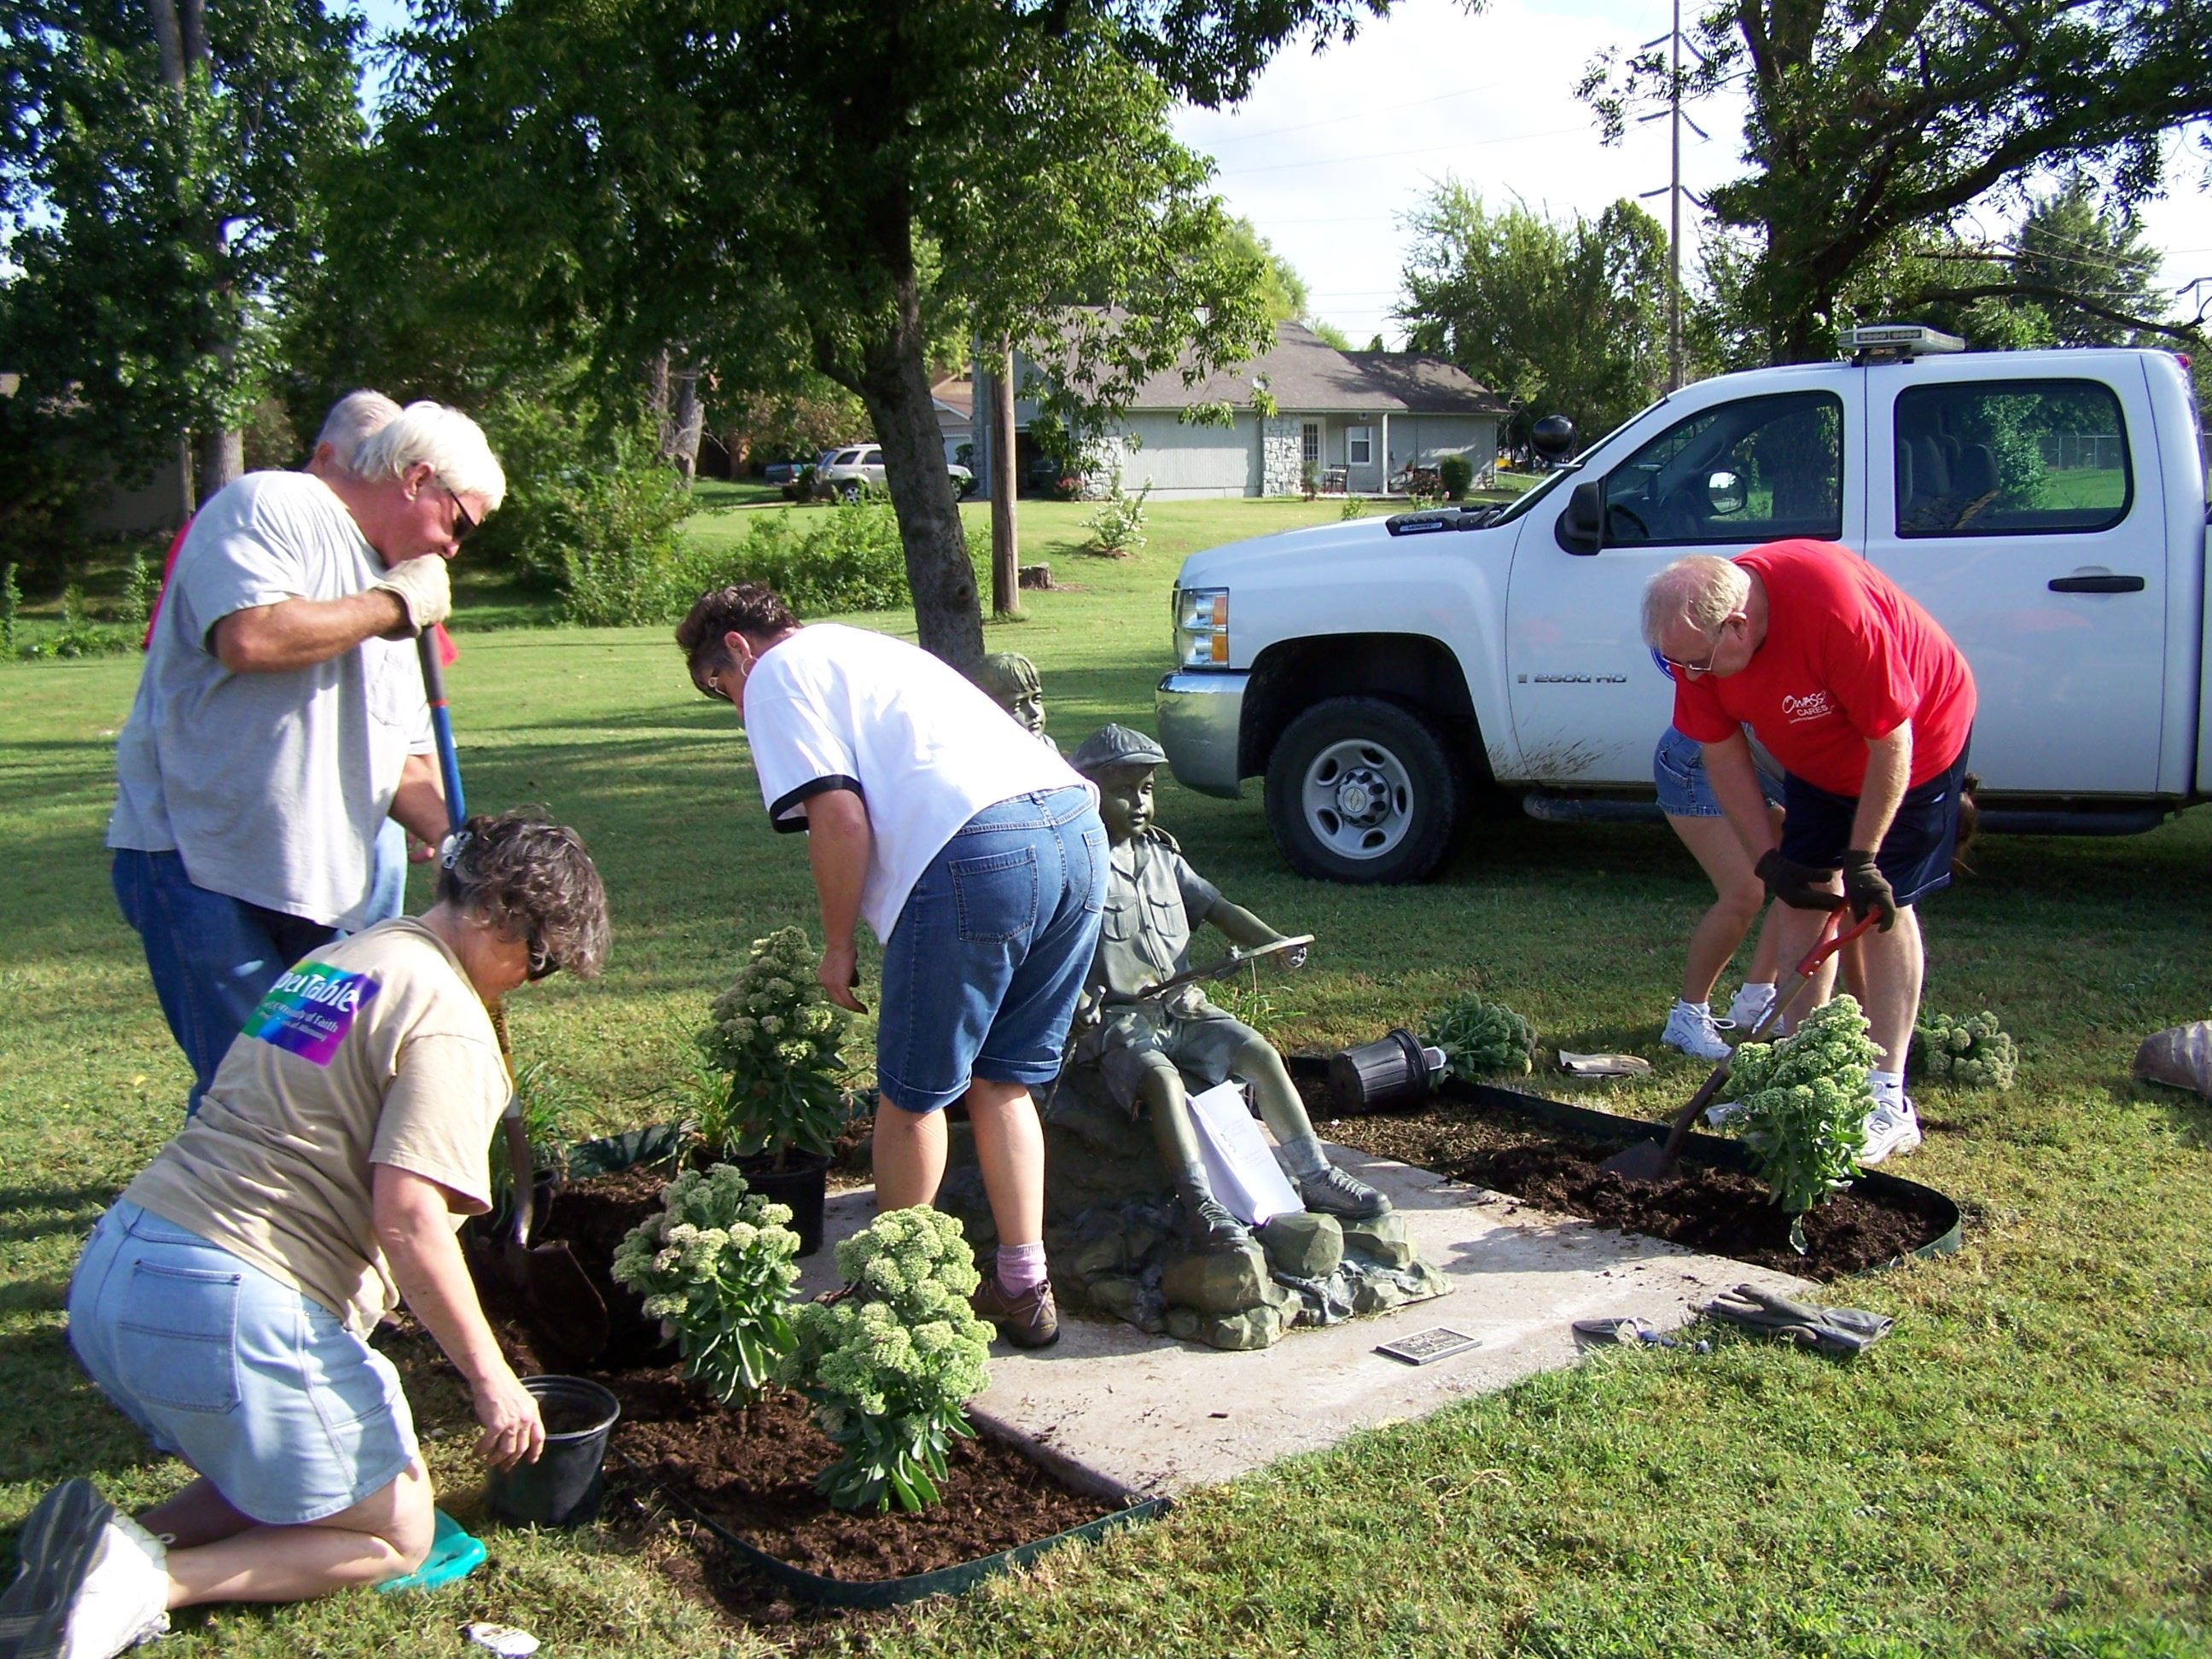 Volunteers plant flowers around statue at park